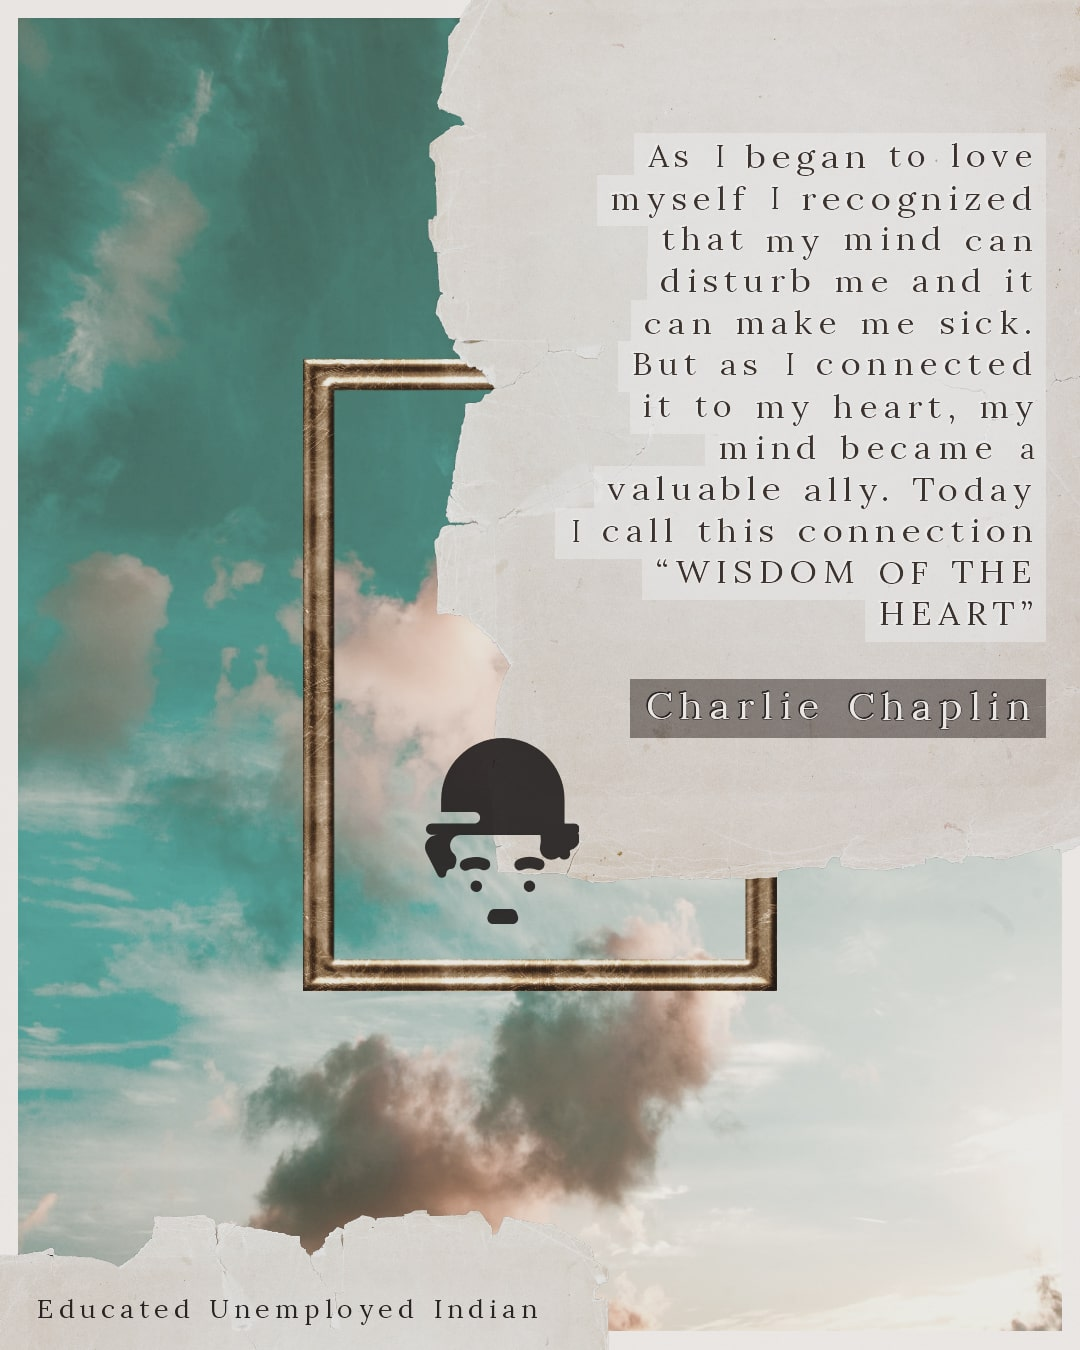 Charlie Chaplin Quote on Wisdom of the Heart-min